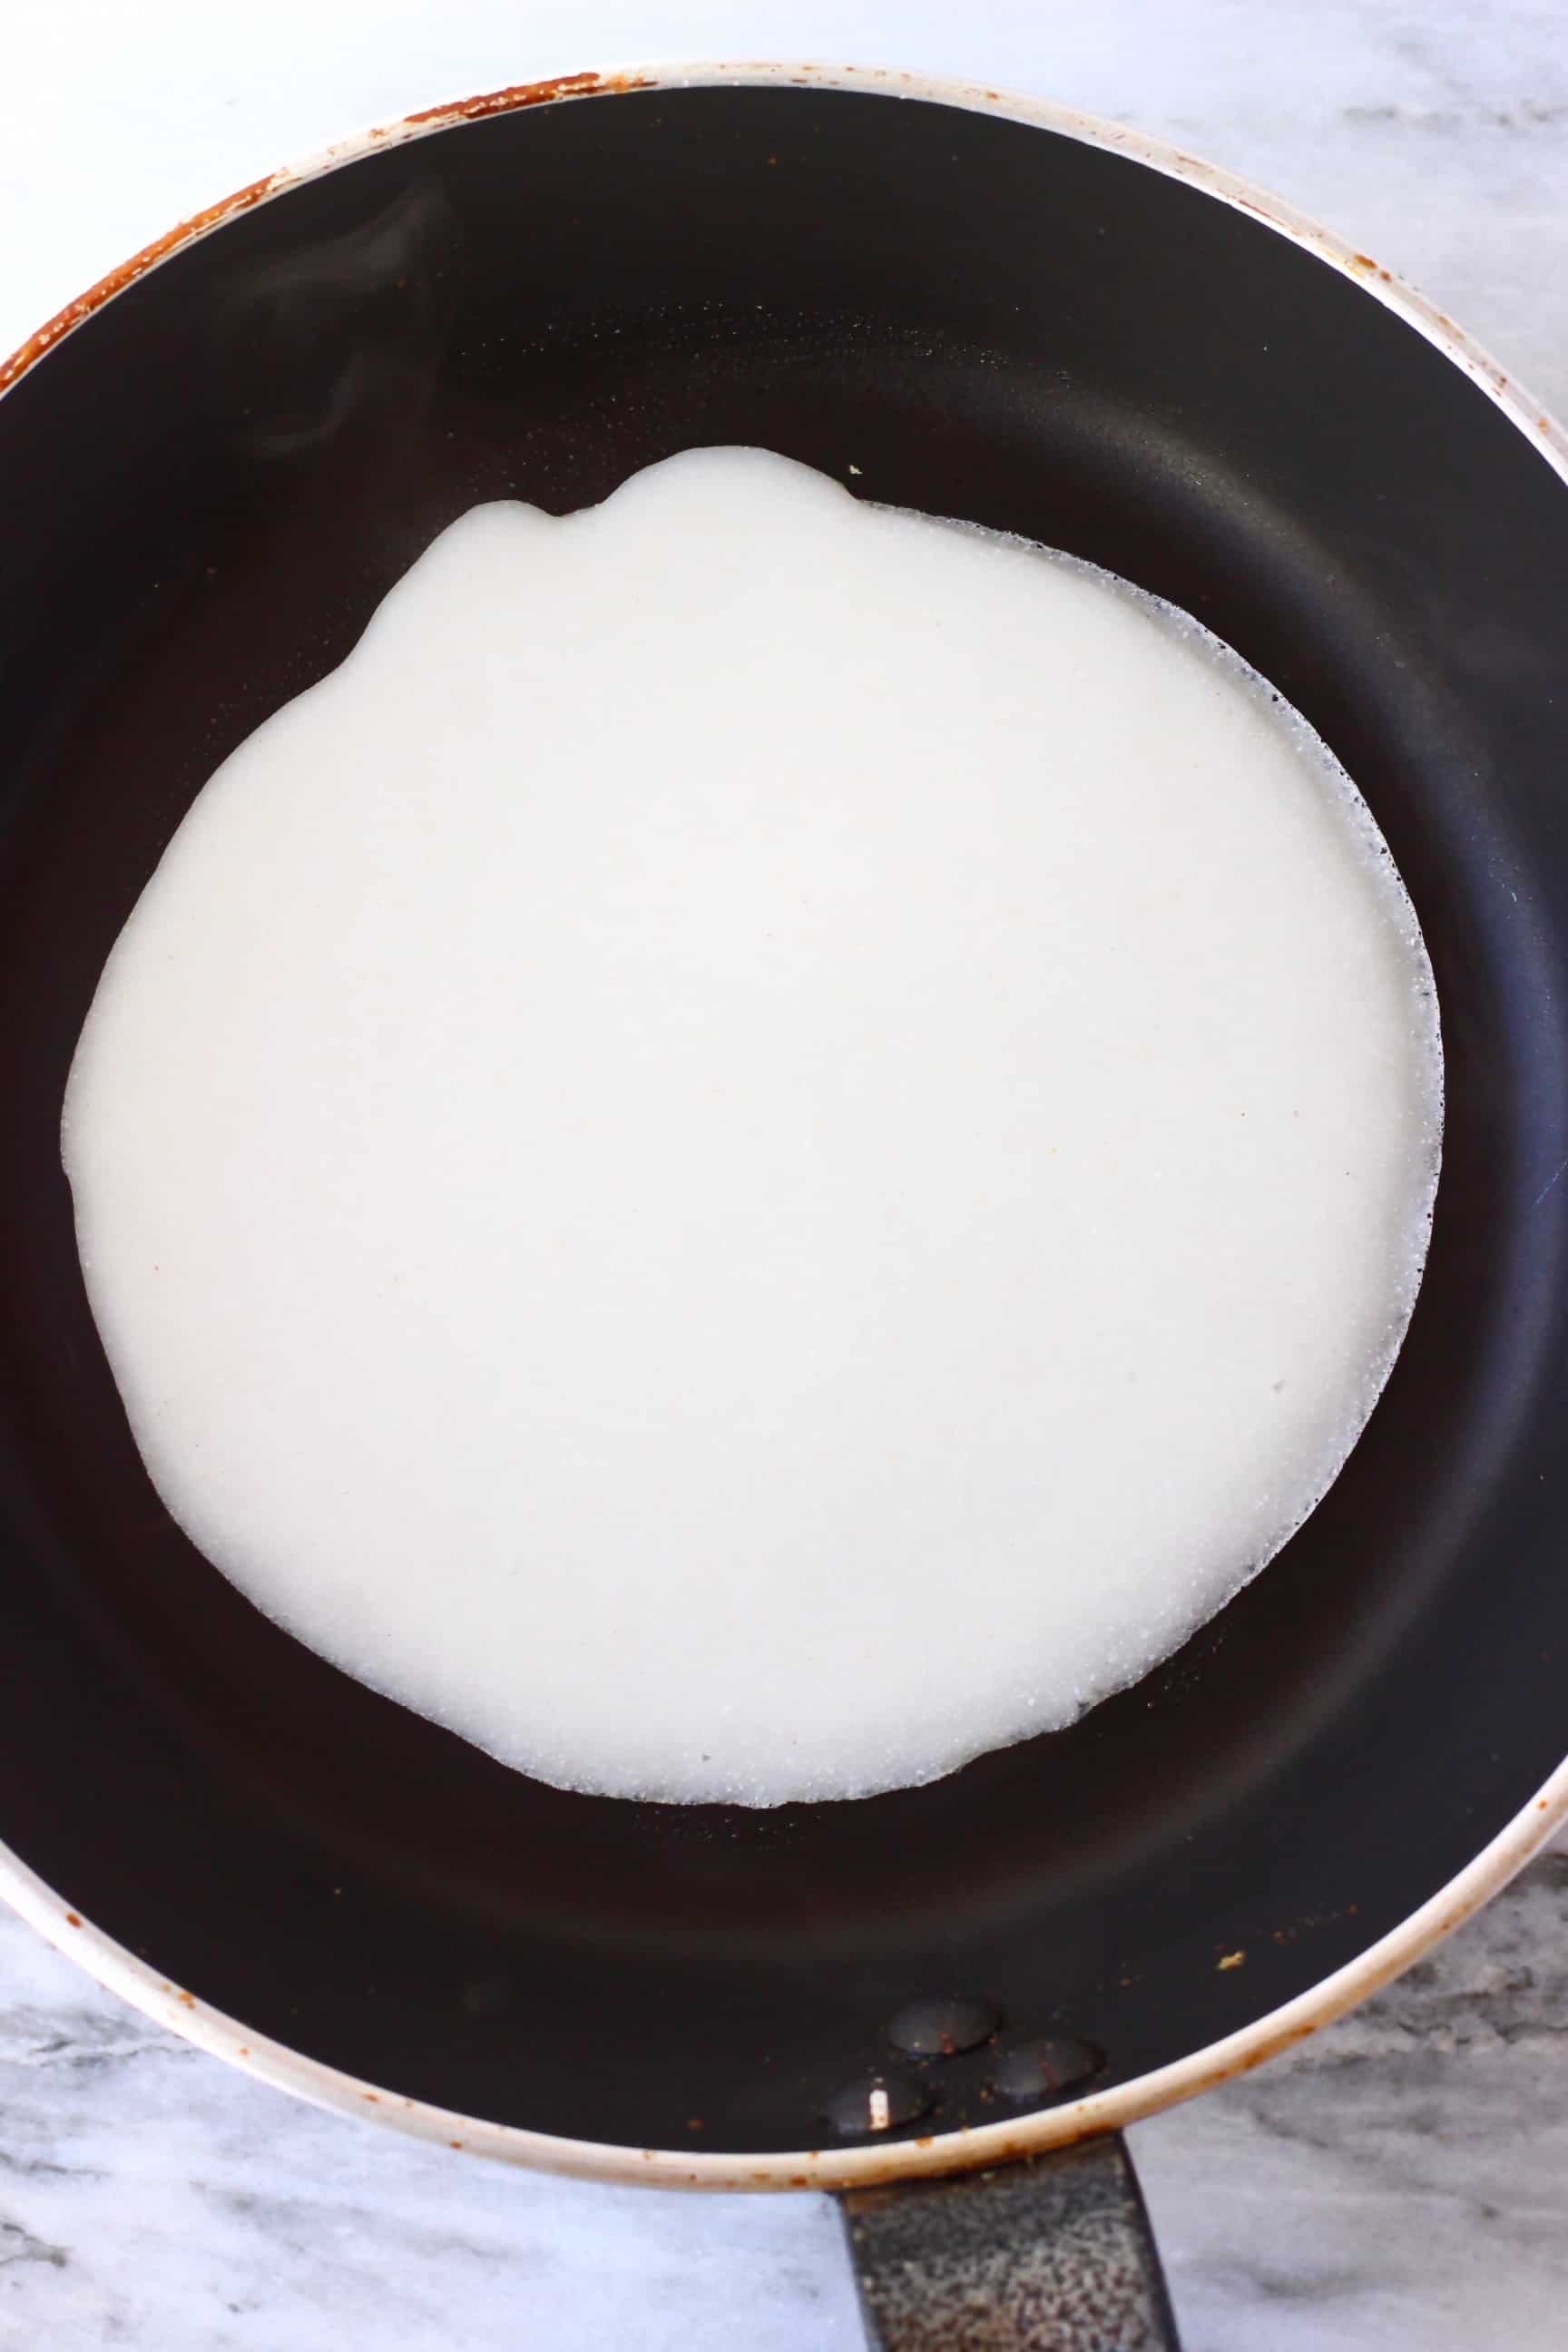 A round gluten-free vegan crepe being fried in a black frying pan